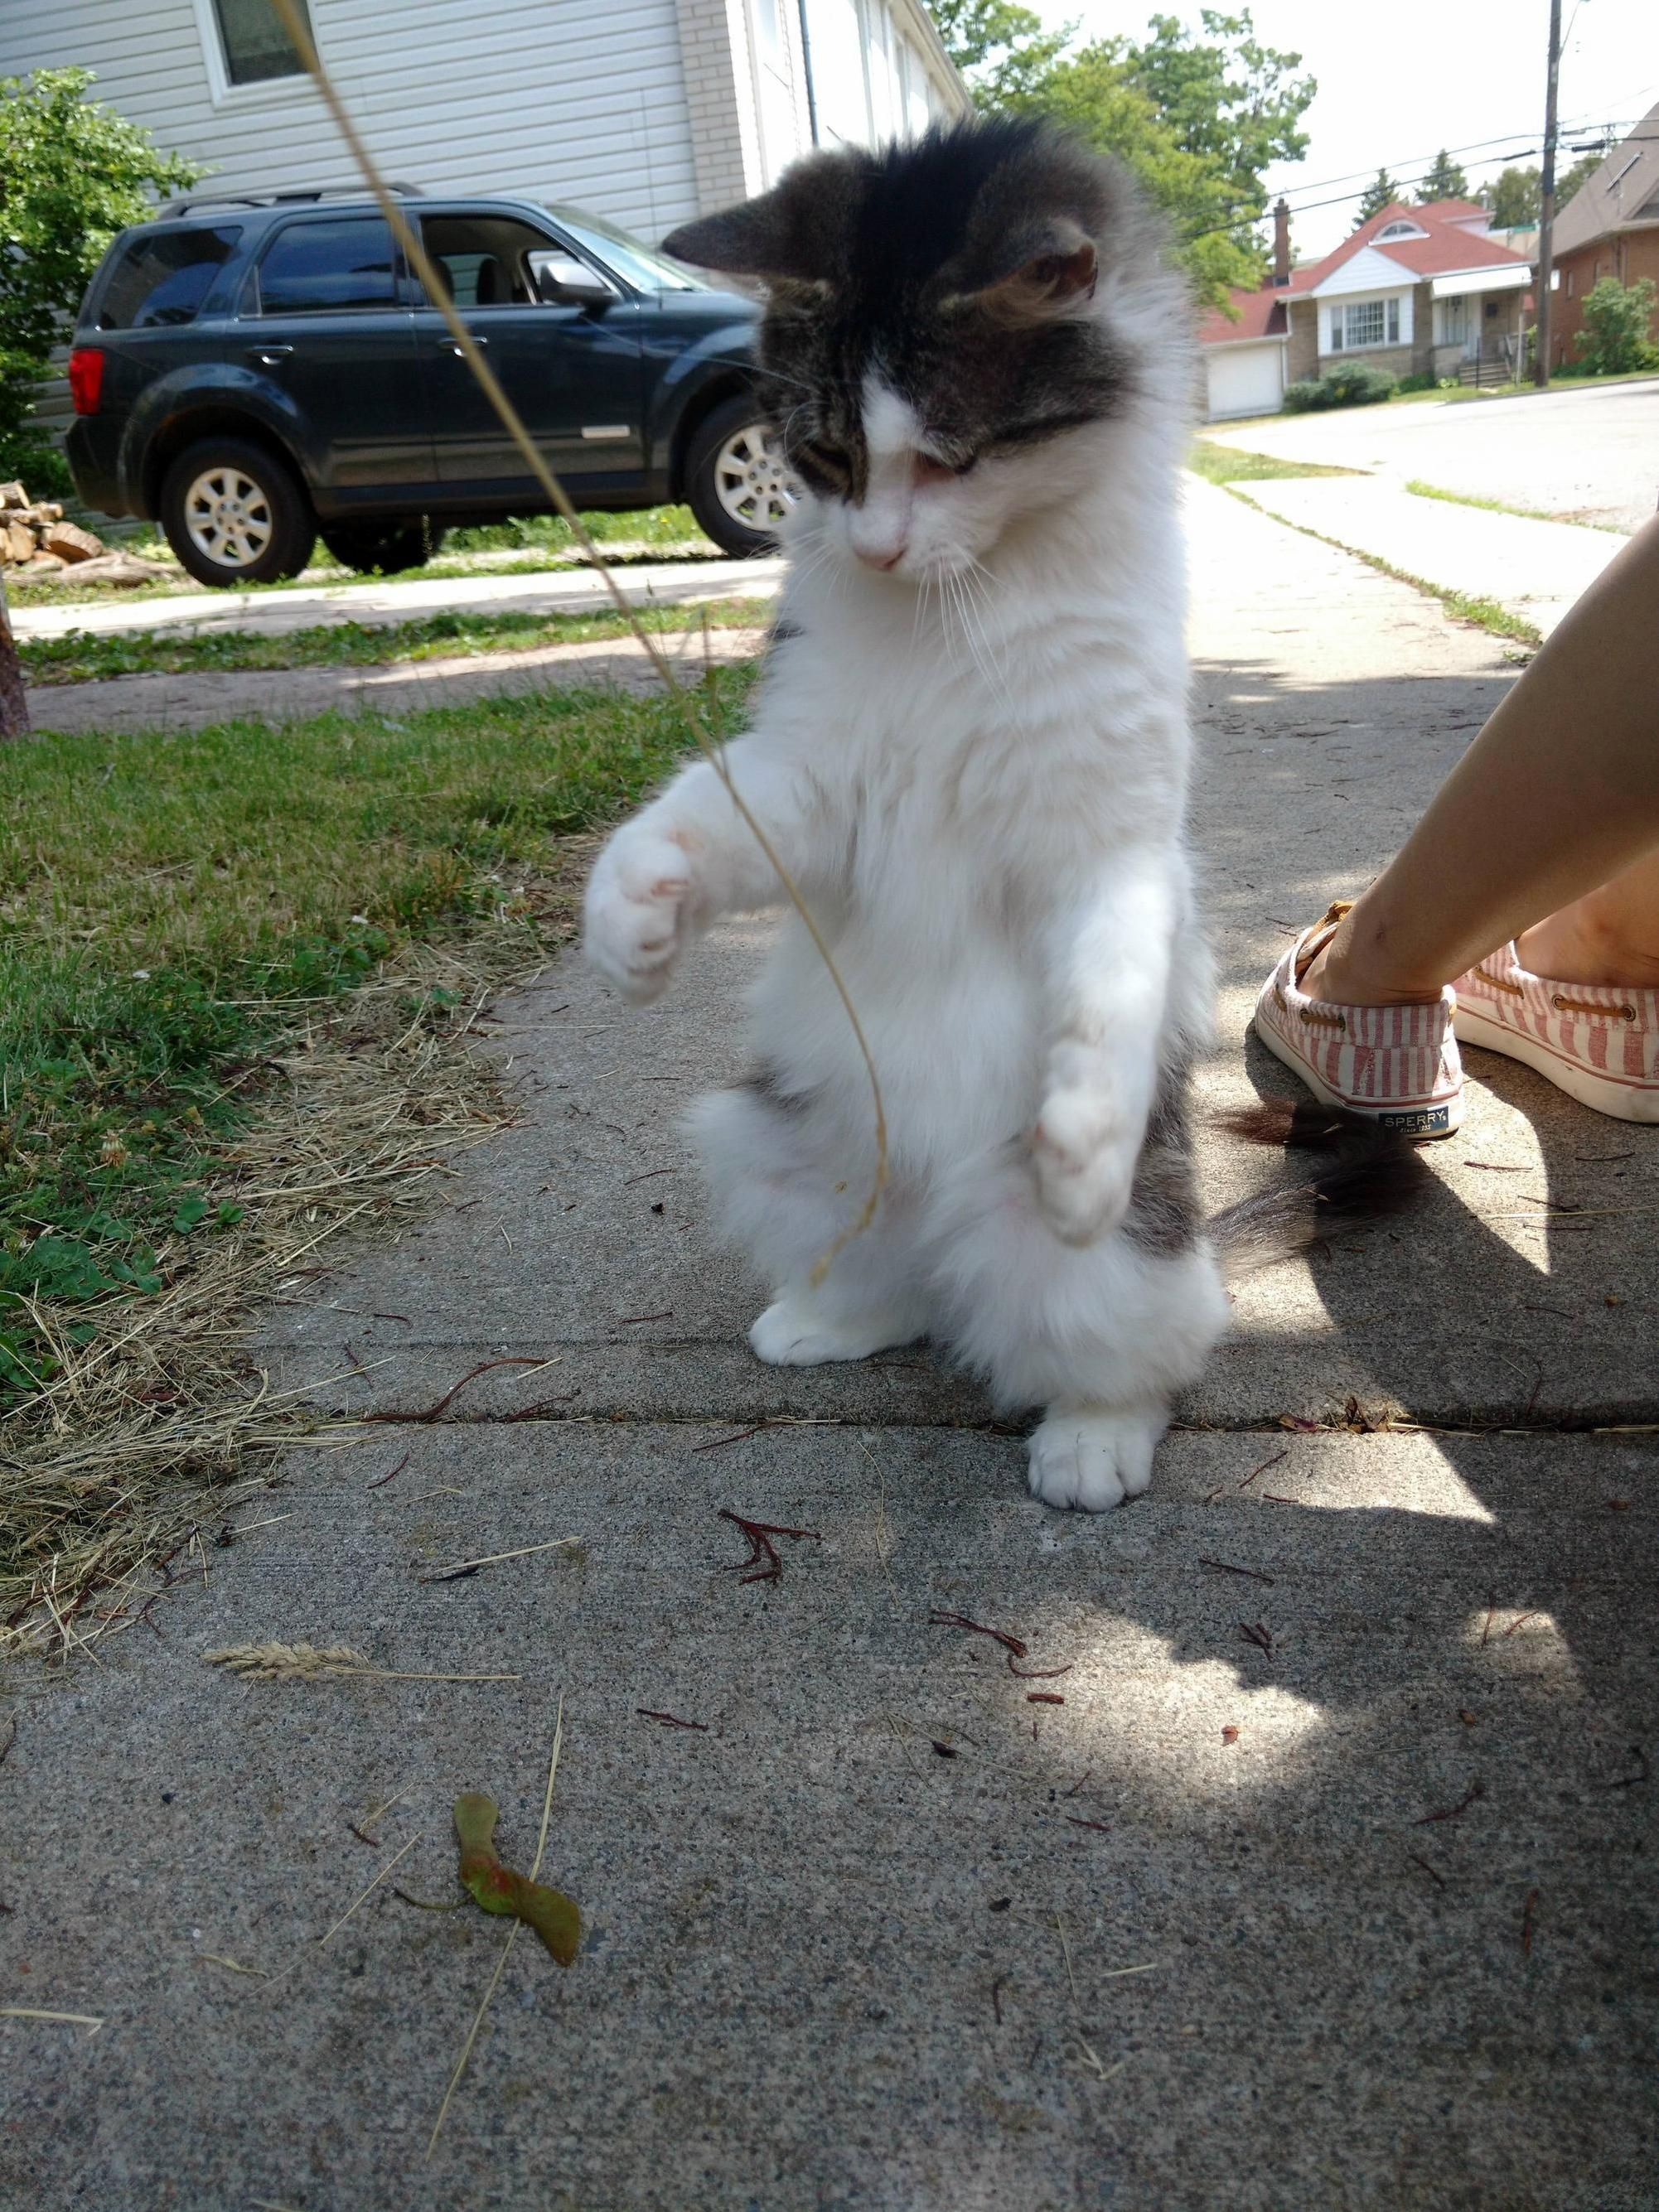 This is scrappycat. shes a pal from my neighborhood - http://cutecatshq.com/cats/this-is-scrappycat-shes-a-pal-from-my-neighborhood/